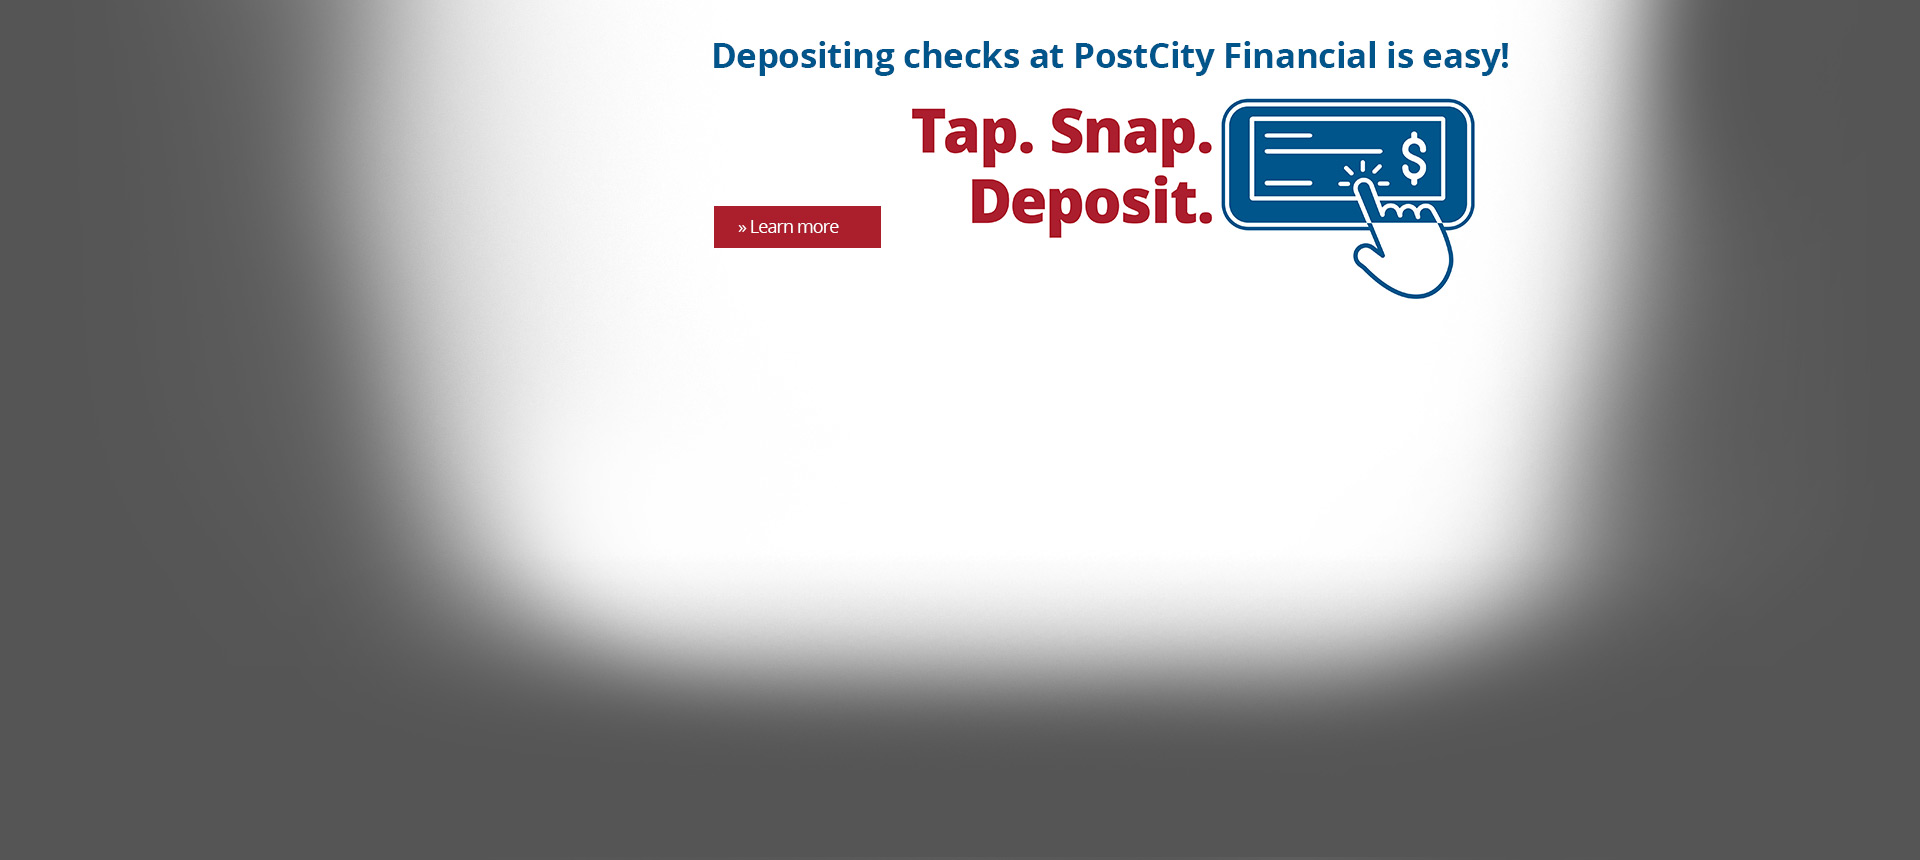 Mobile Check Deposits